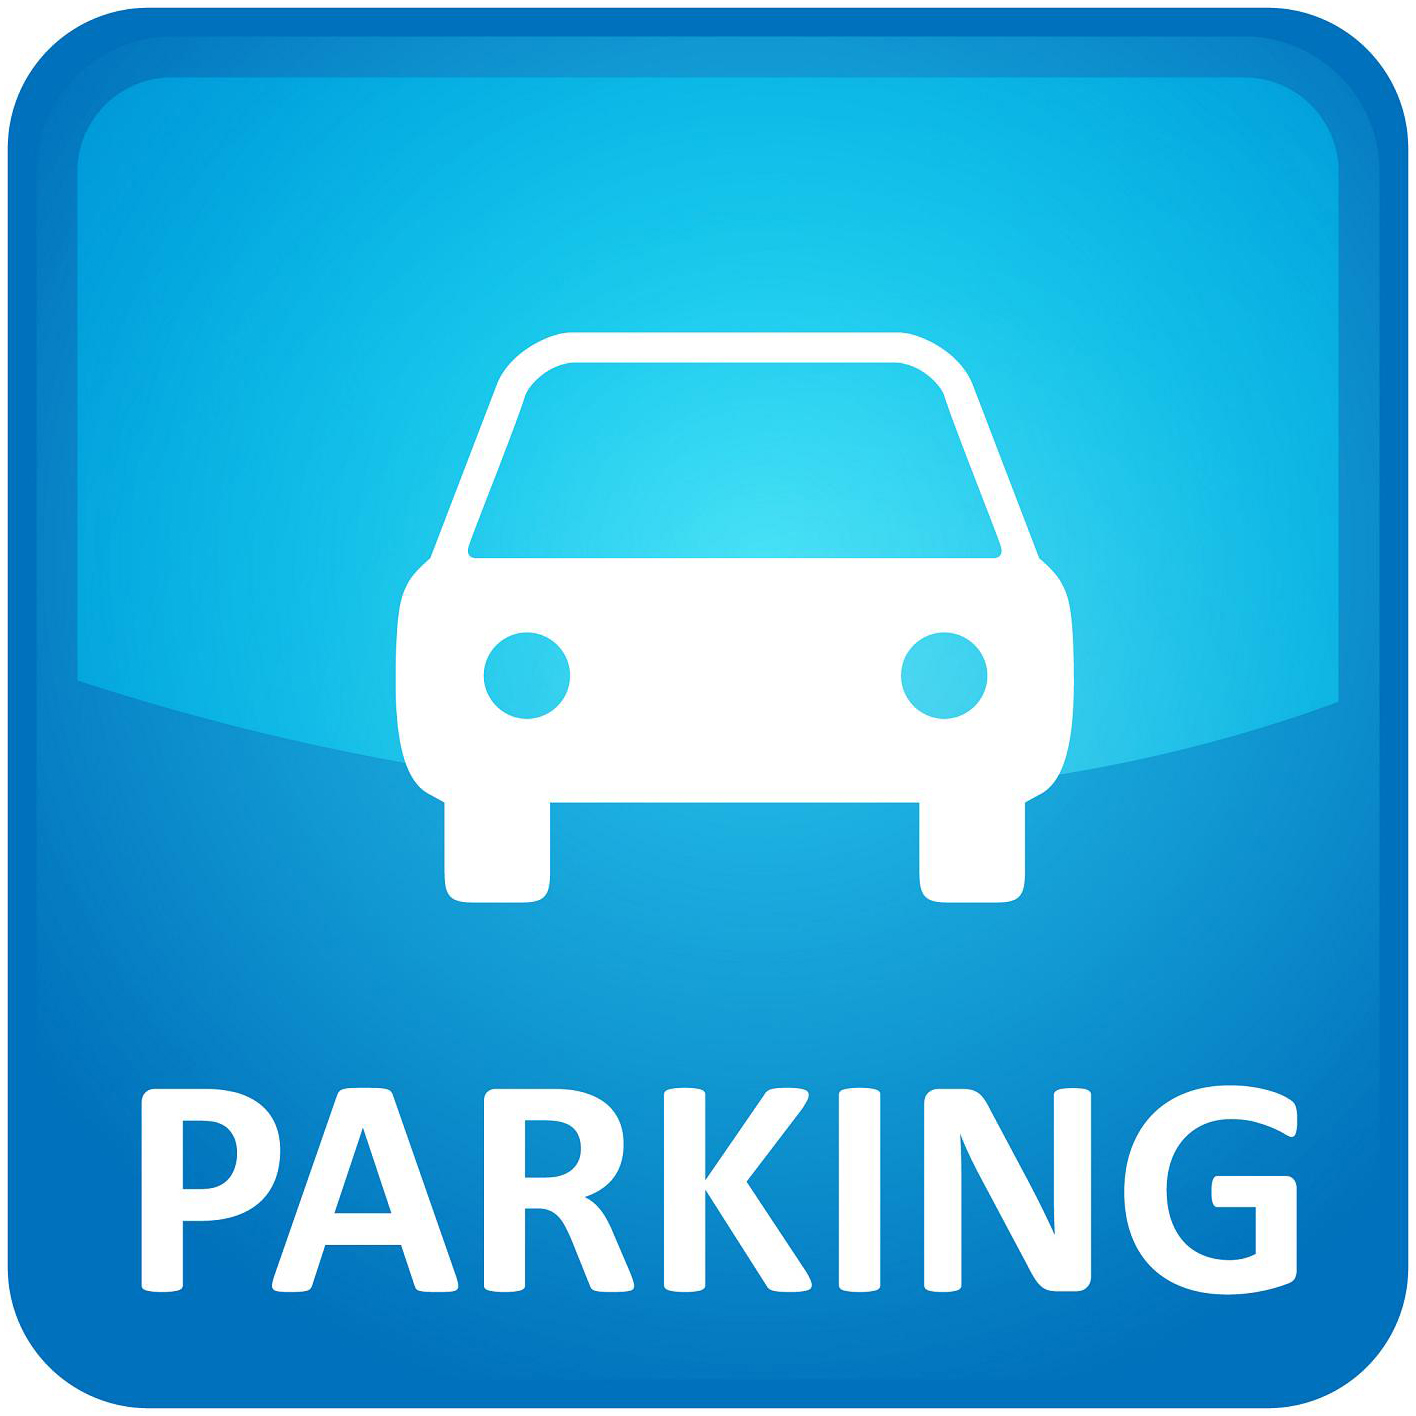 carparkingsign2